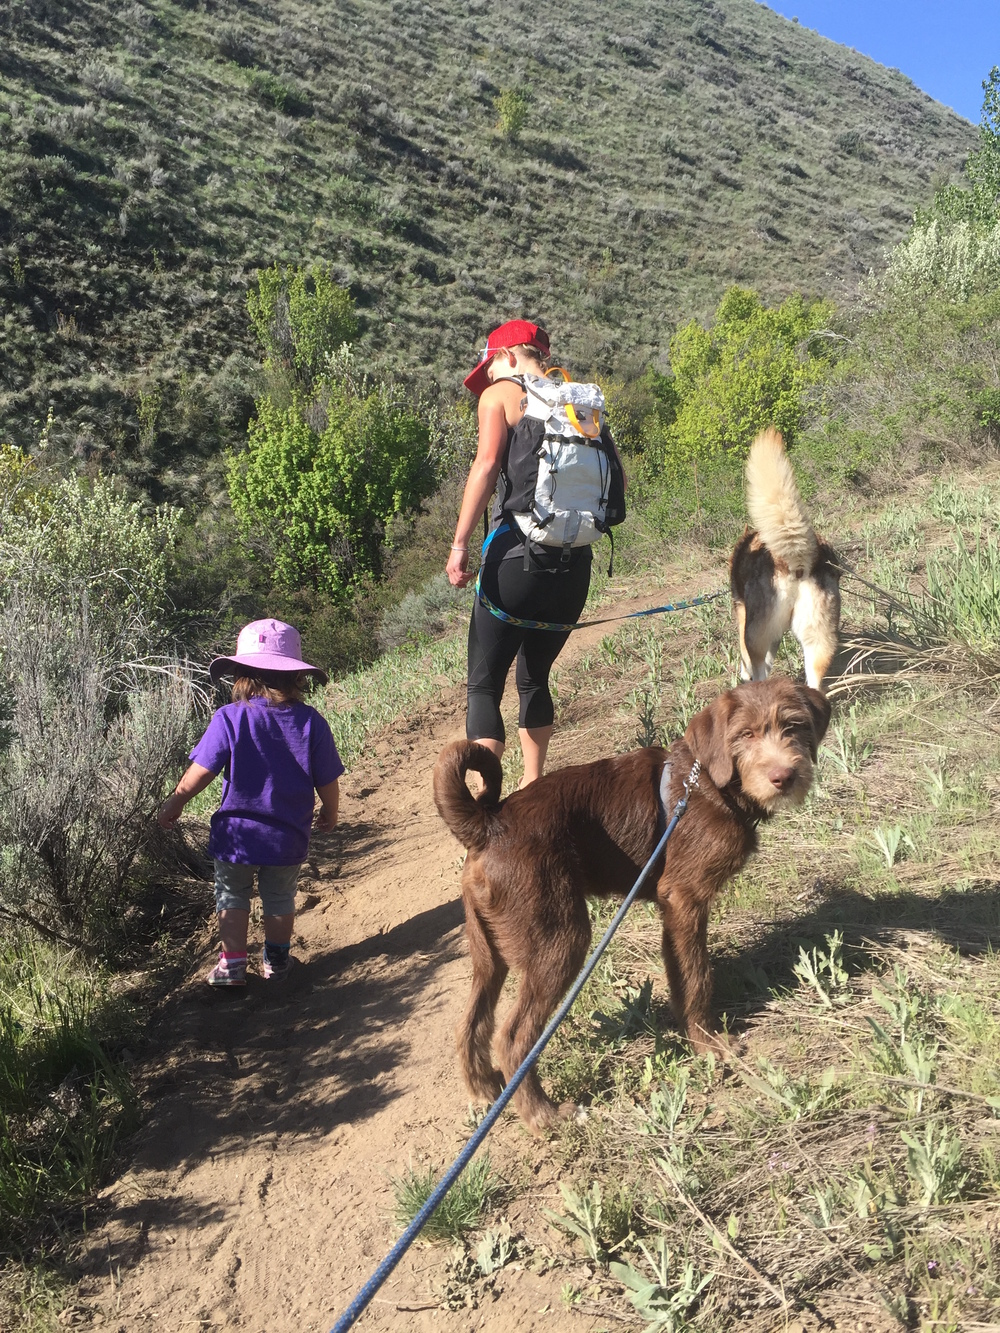 Fi takes a hike with Ashley, Theo, or Nikki and the uphill